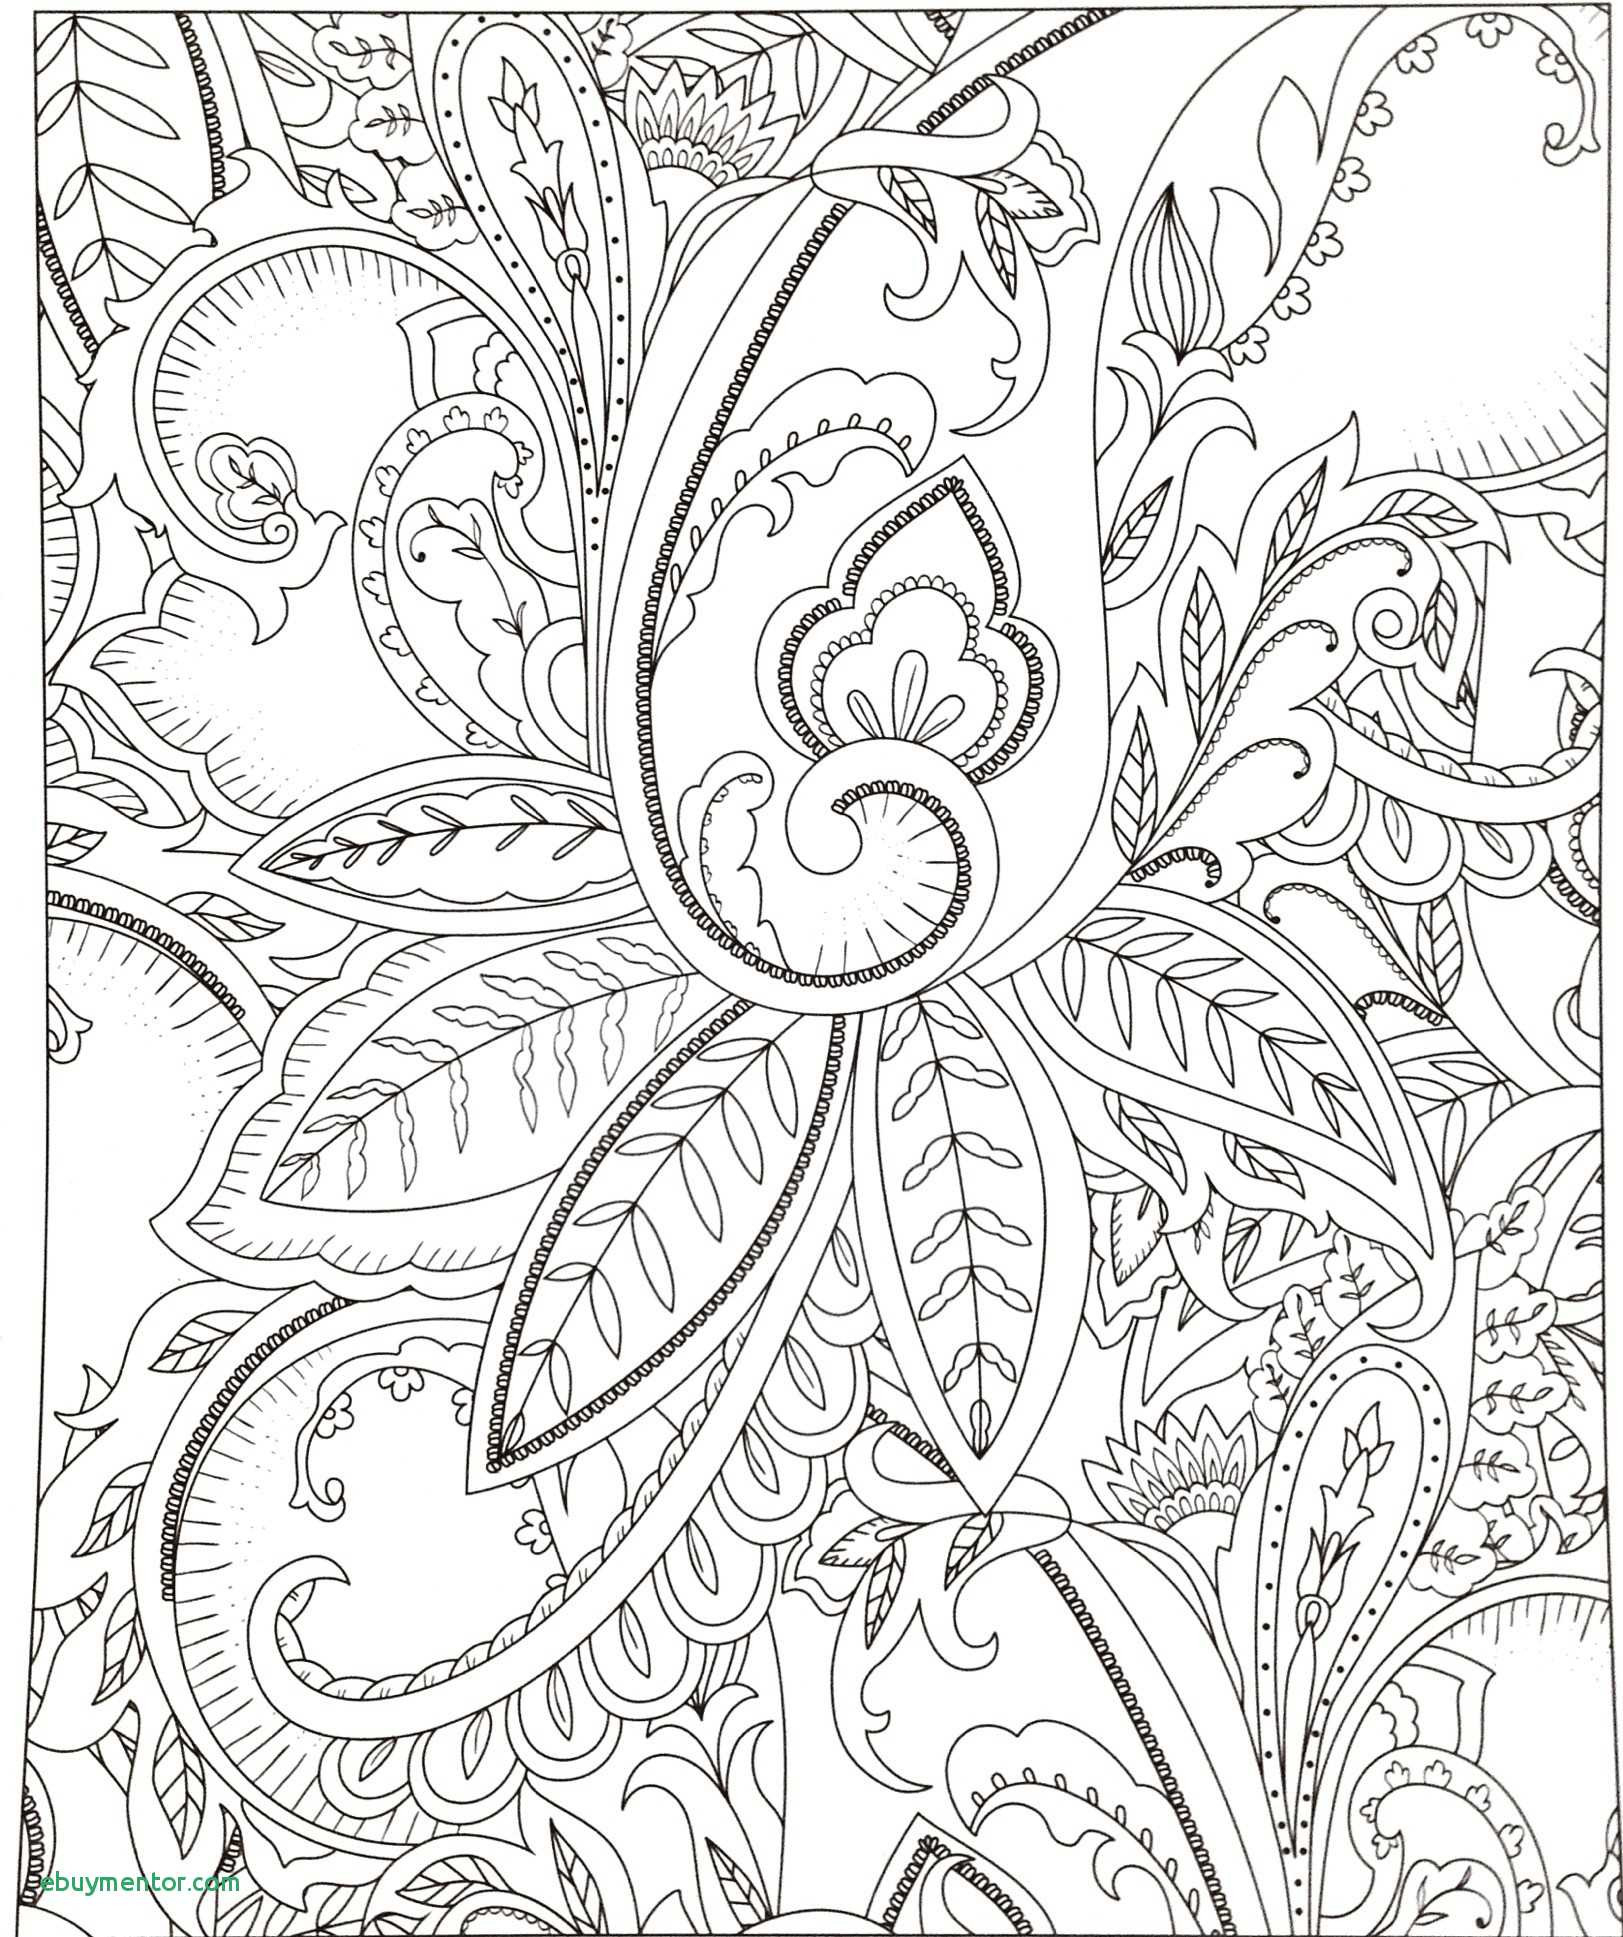 pretty mandala coloring pages Download-Coloring Activity Pages Coloring Pages Mandala Christmas Fresh Cool Coloring Printables 0d 8-n